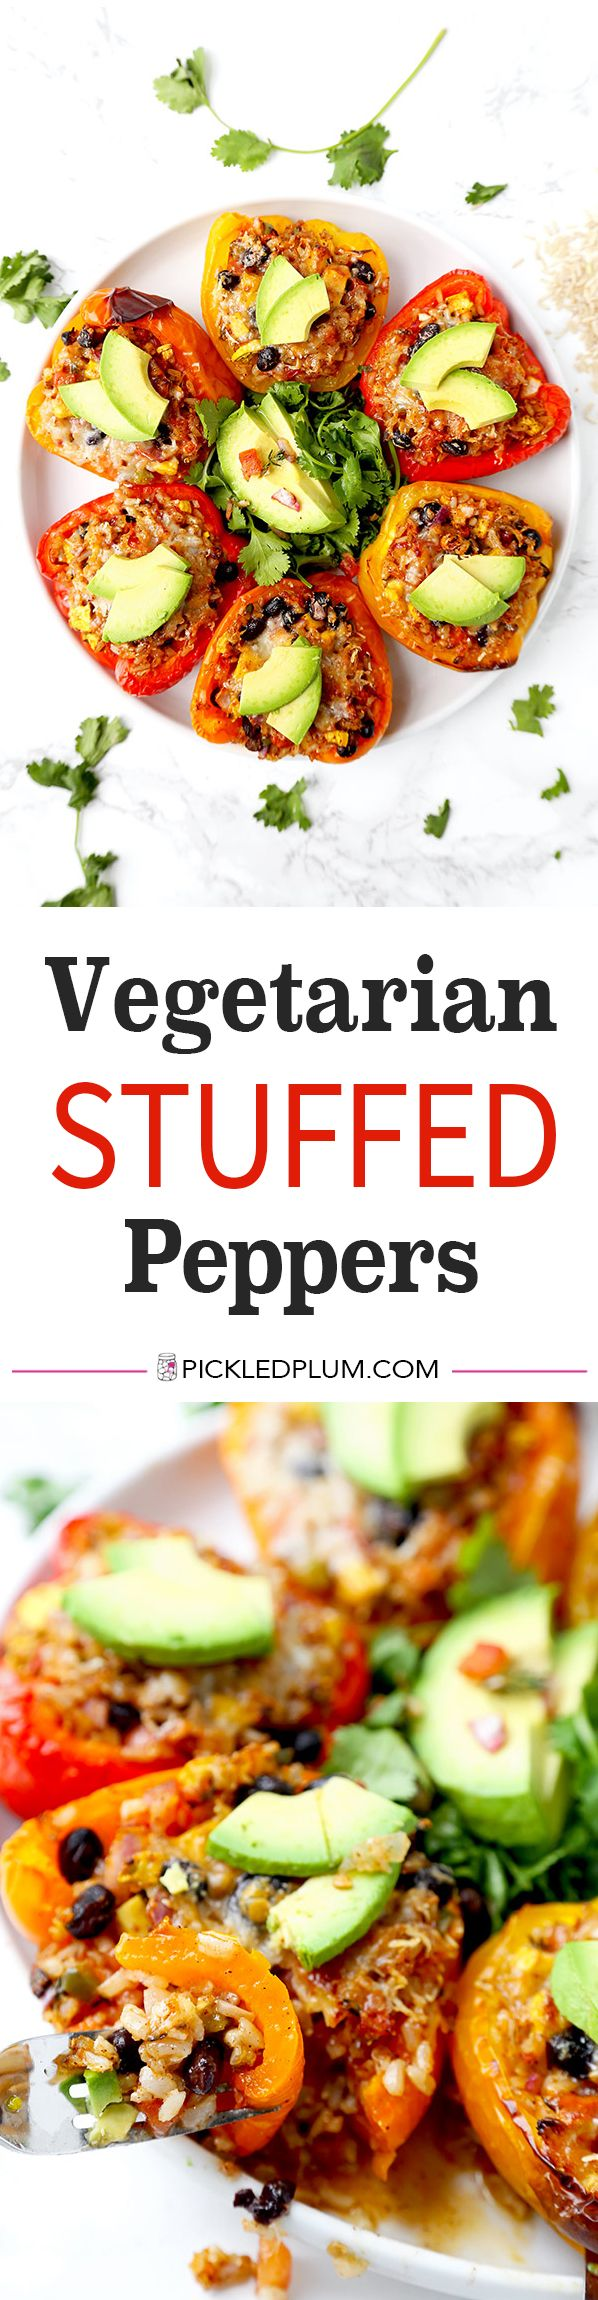 Vegetarian Stuffed Peppers - So colorful and healthy! Munch on these savory vegetarian stuffed peppers and watch your wrinkles disappear! Serve them as a side or a main and top them with avocado, sour cream and hot sauce. They are filling, delicious and guilt-free. Recipe, vegetarian, gluten free, stuffed peppers | pickledplum.com